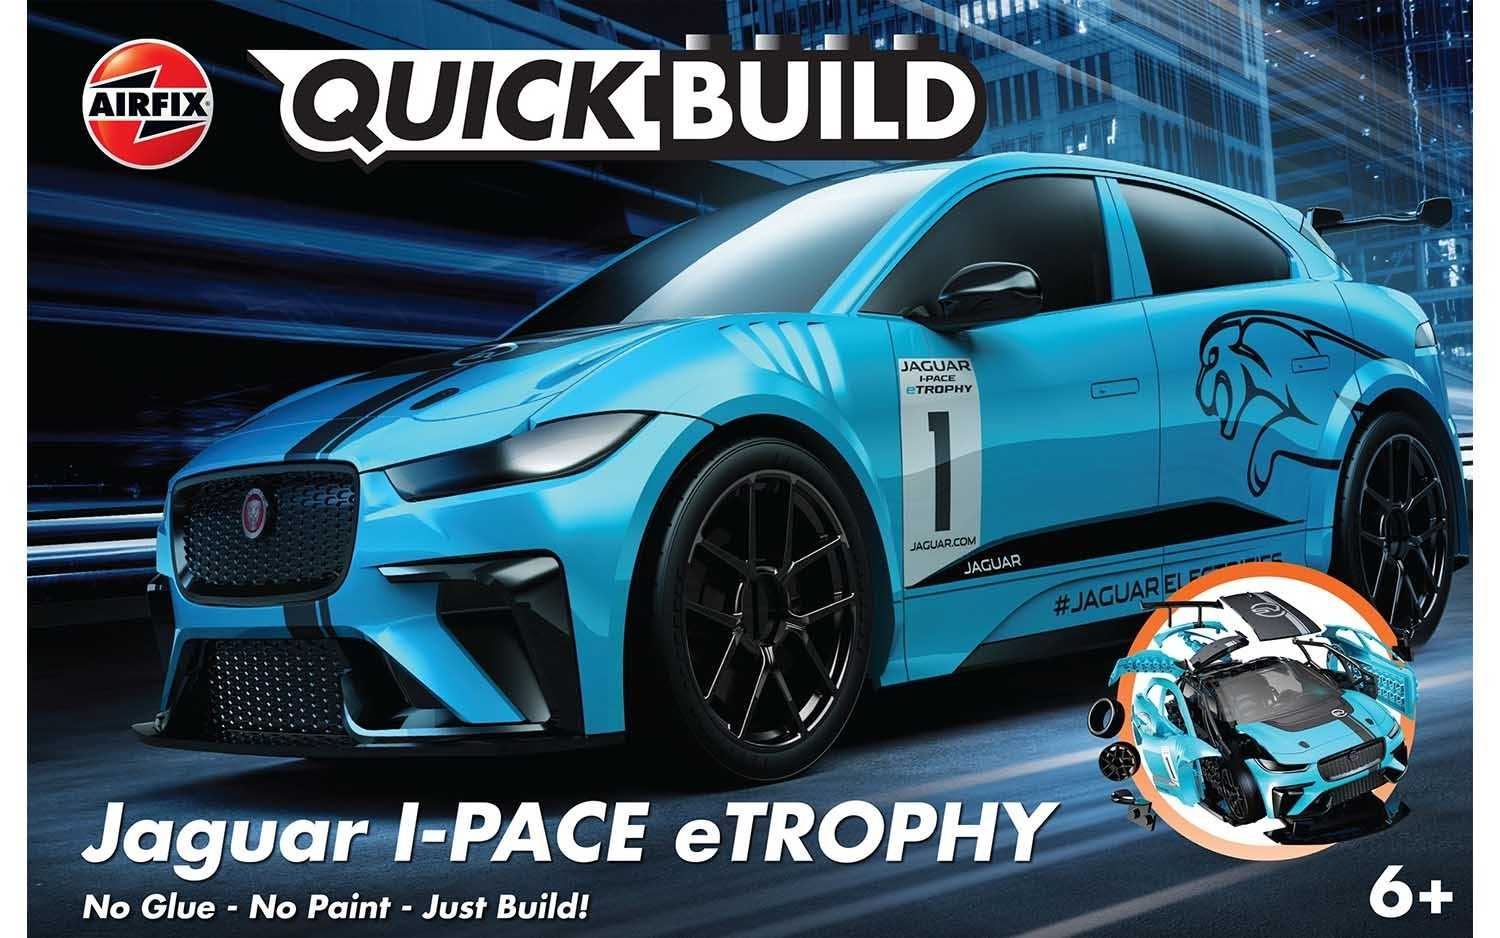 QUICK BUILD Jaguar I-PACE eTROPHY